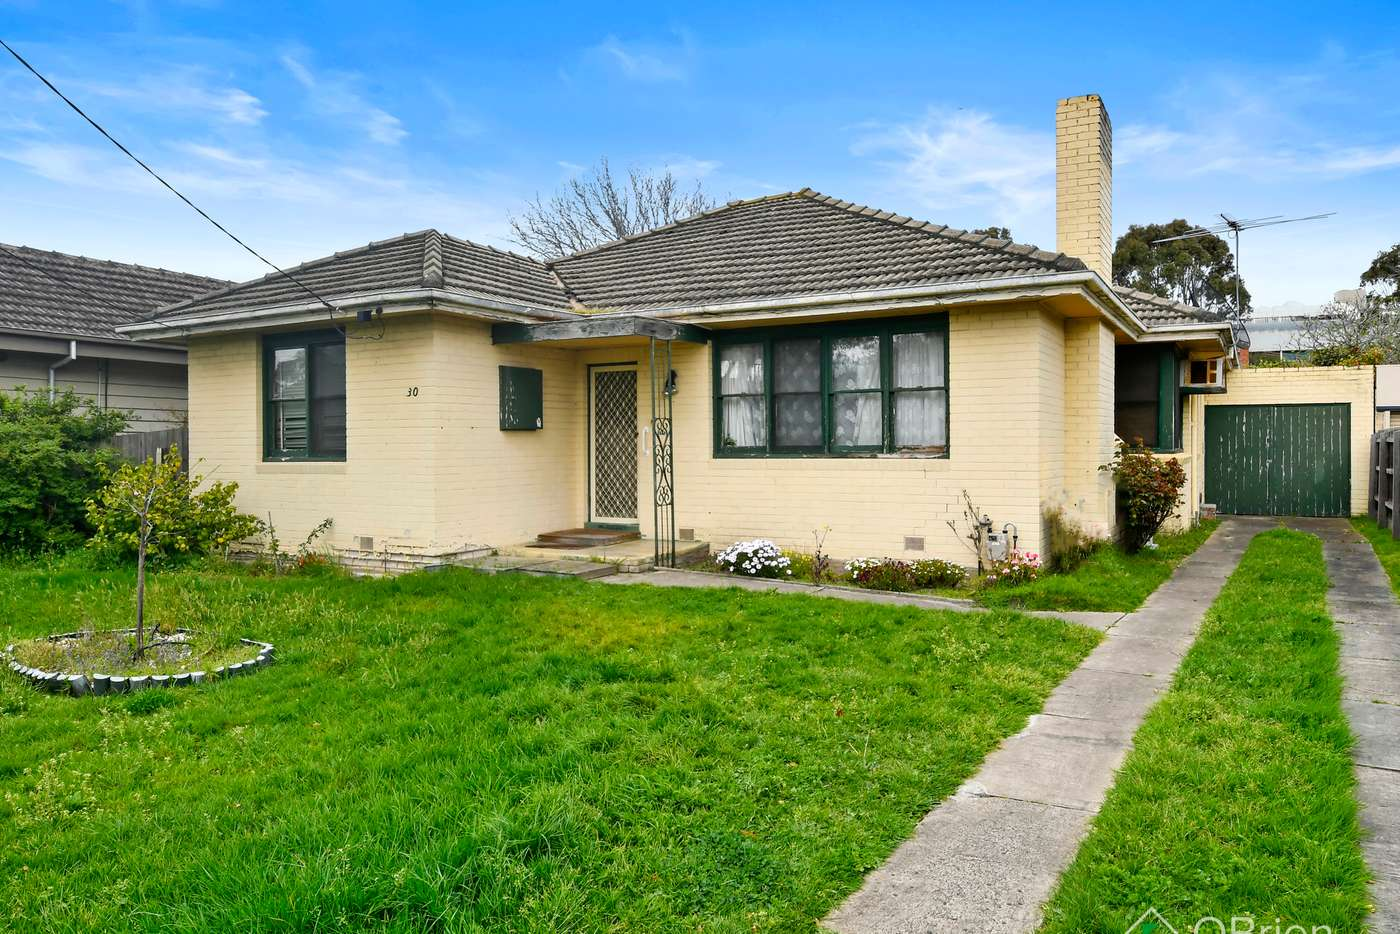 Main view of Homely house listing, 30 Kelso Street, Frankston VIC 3199